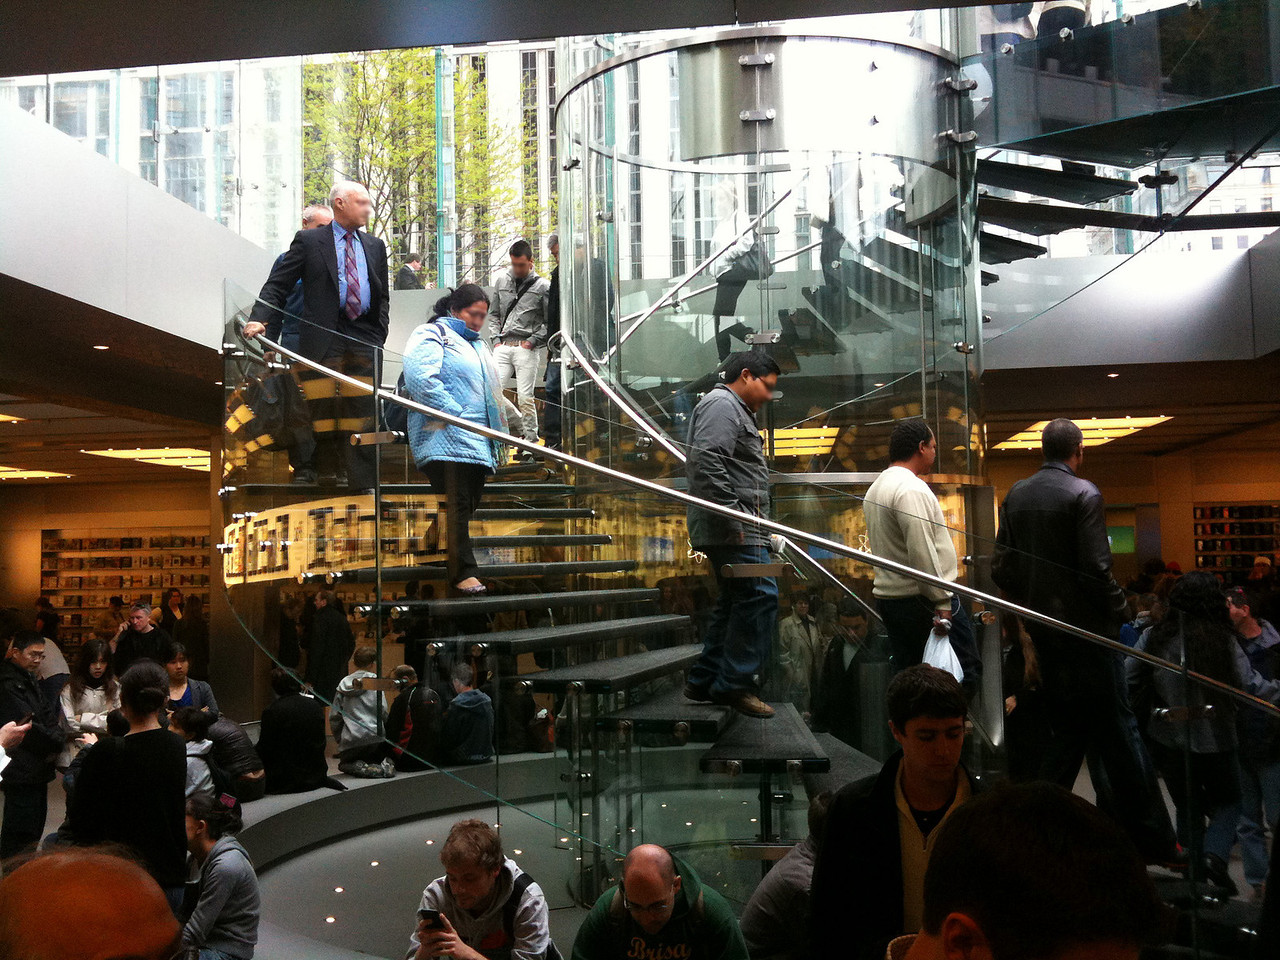 The downward spiral of temptation into the Apple Store on Fifth Avenue, the 28th most photographed landmark on earth.